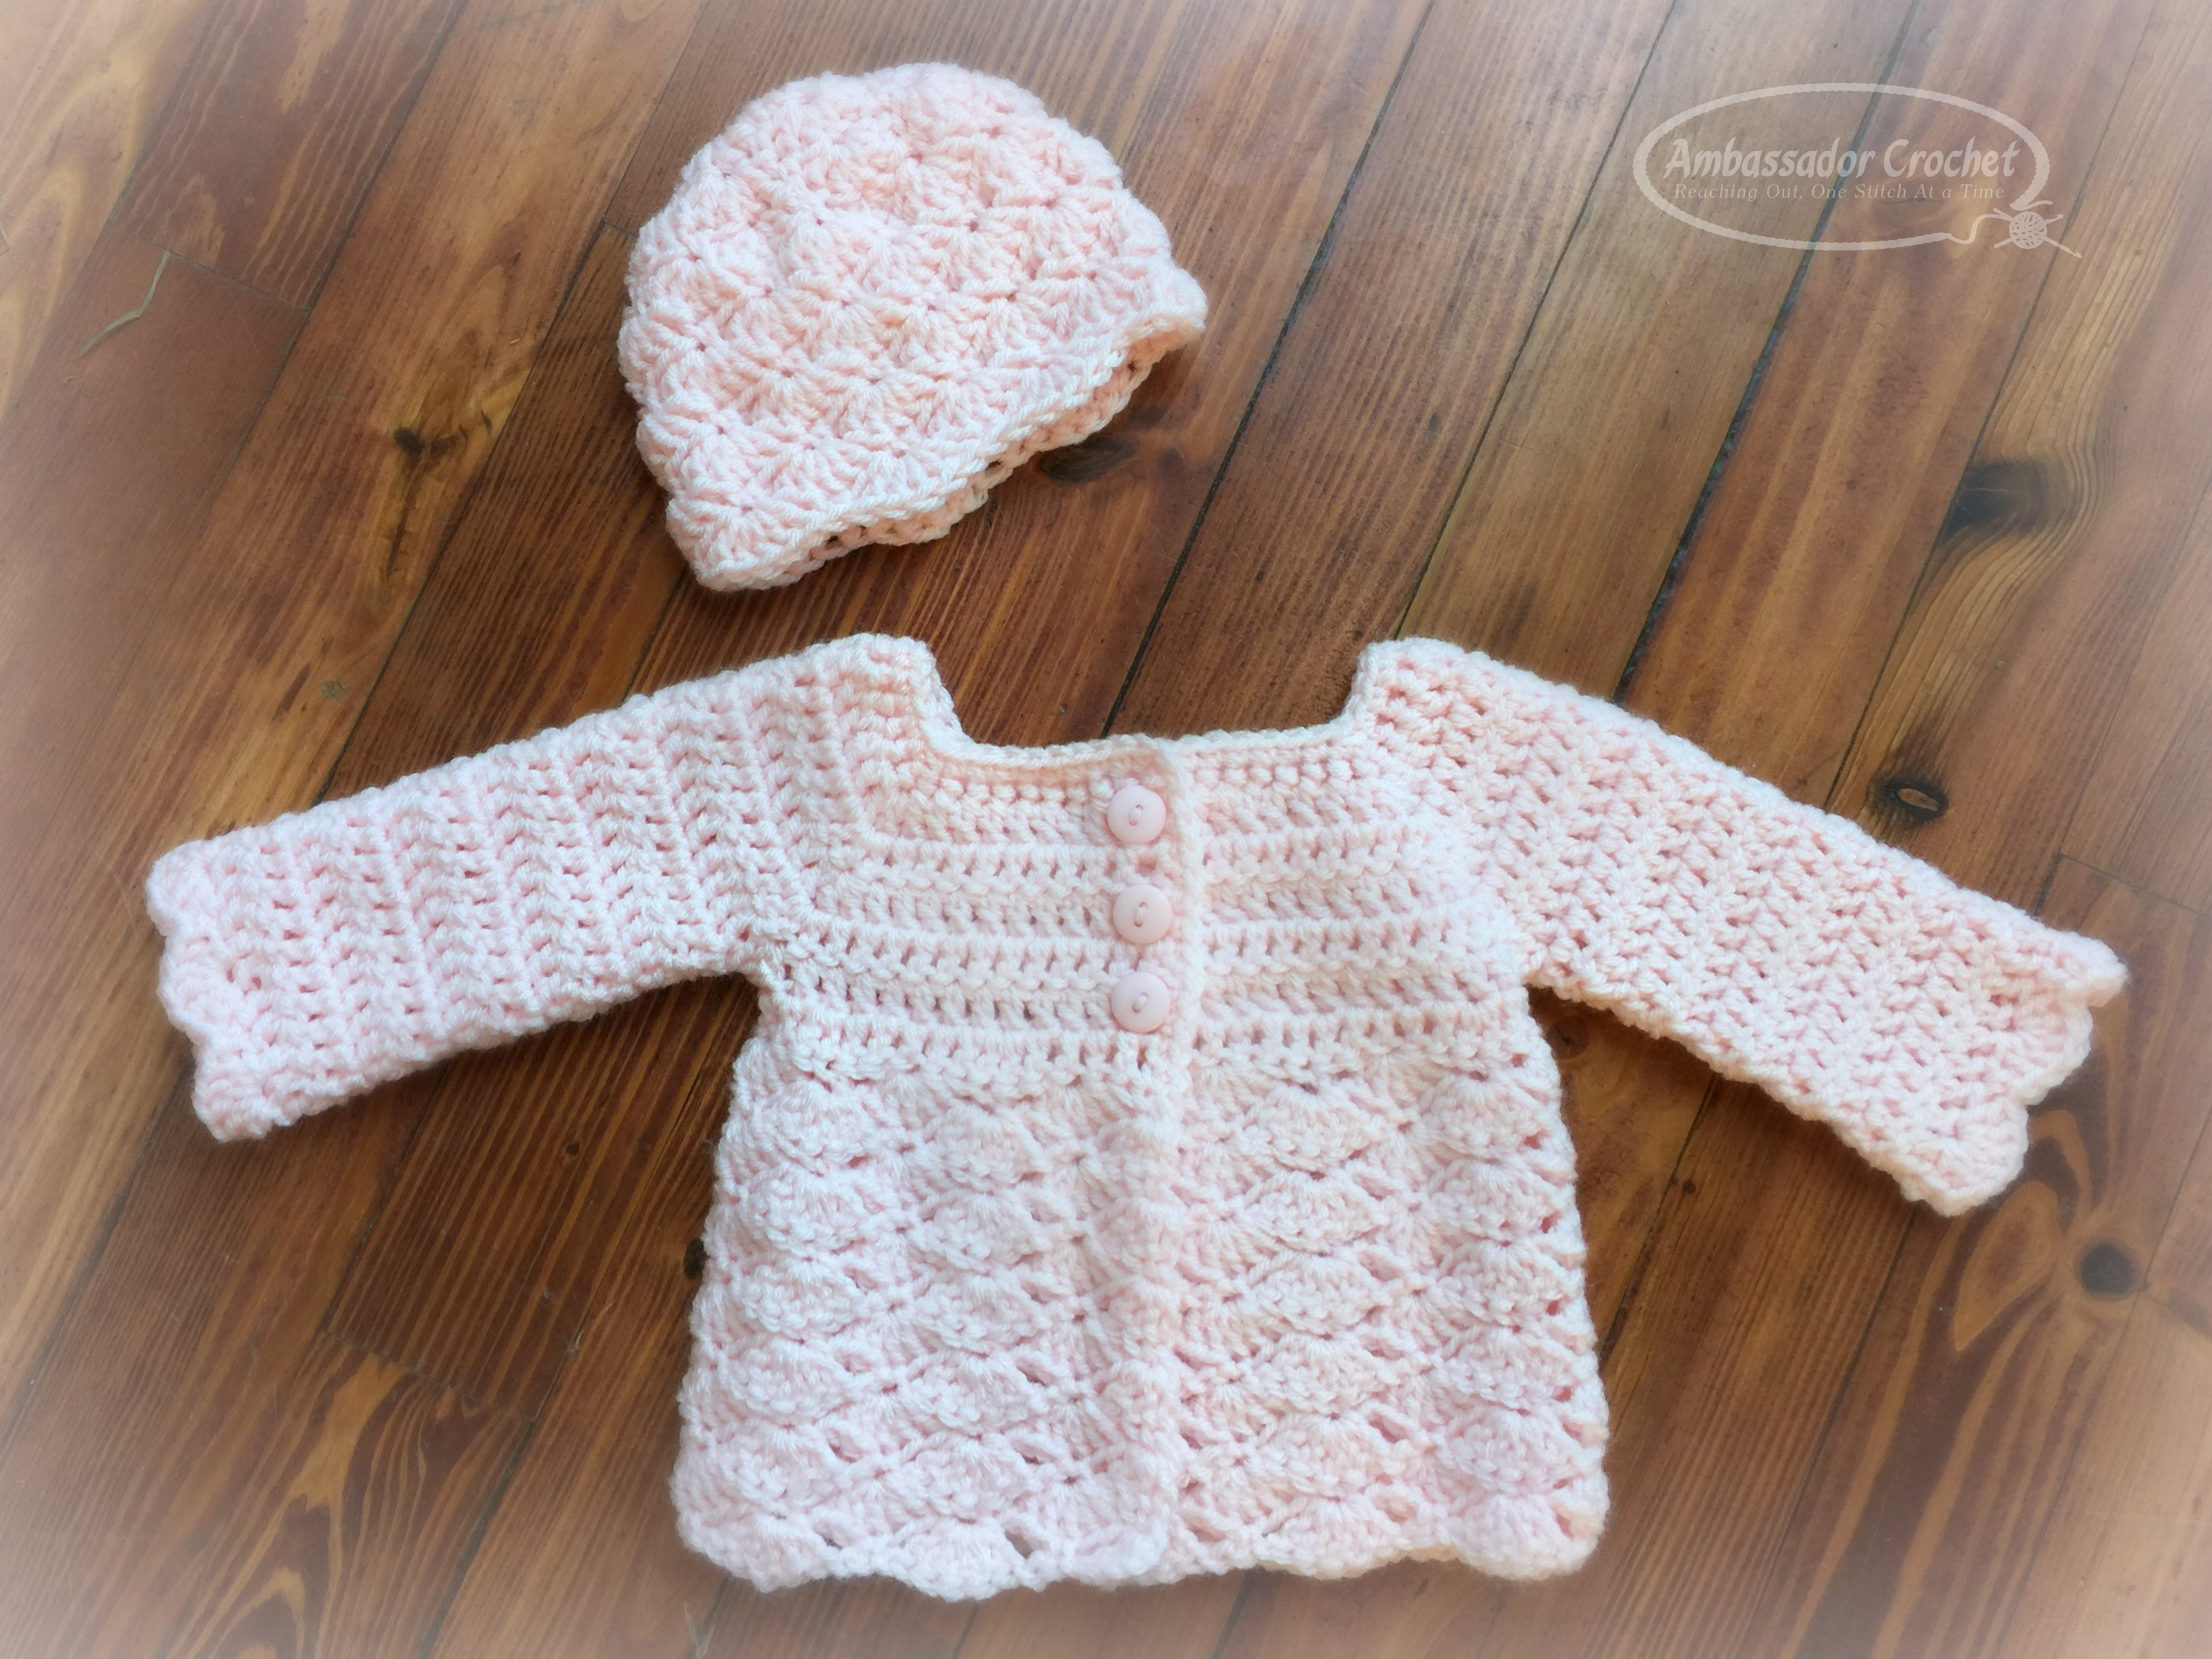 Shells Baby Sweater Crochet Pattern - Ambassador Crochet